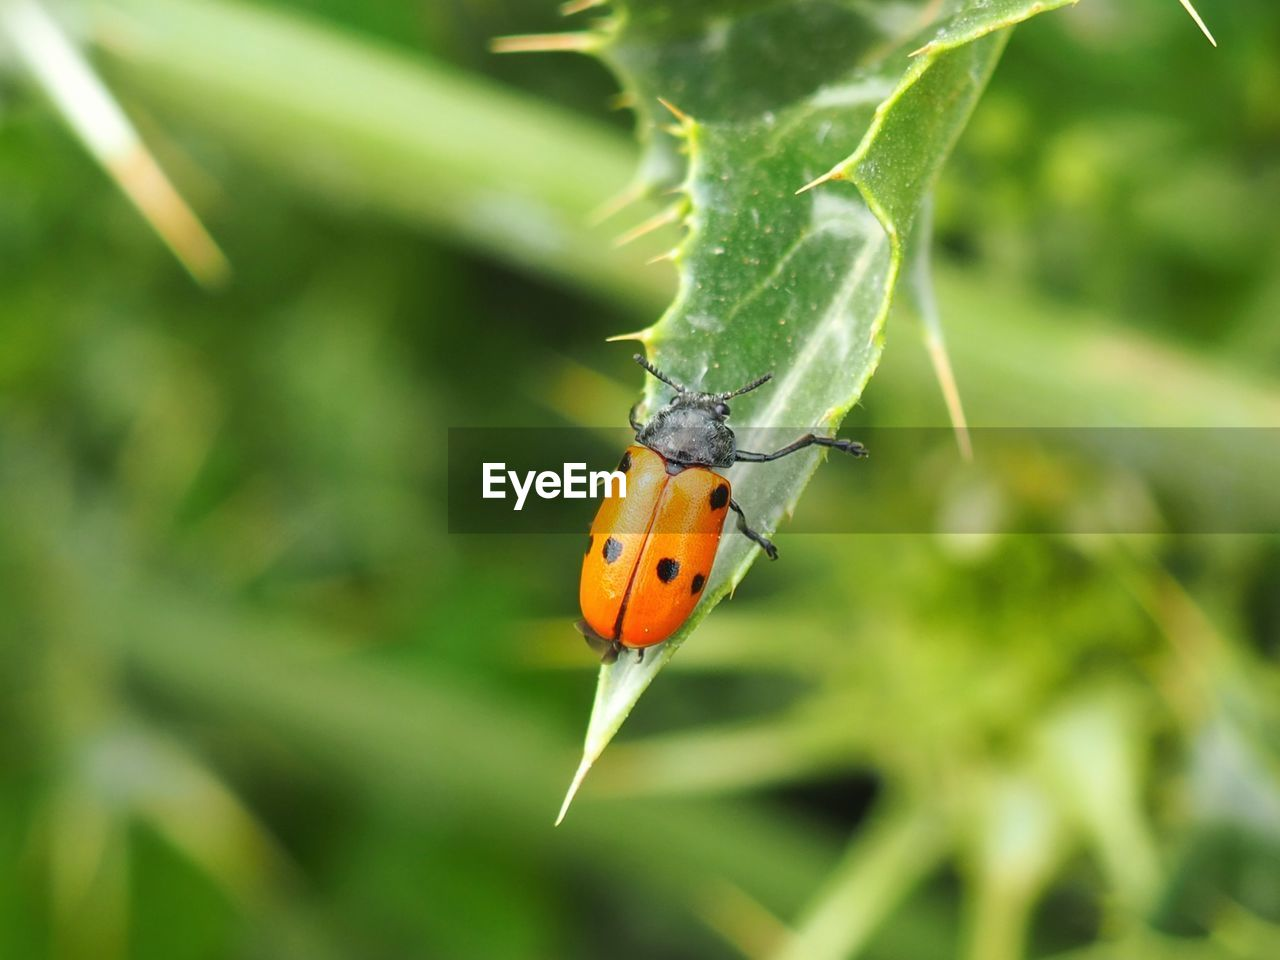 animal themes, animal, invertebrate, animal wildlife, one animal, insect, animals in the wild, plant, close-up, green color, focus on foreground, ladybug, beetle, plant part, beauty in nature, no people, nature, leaf, day, growth, small